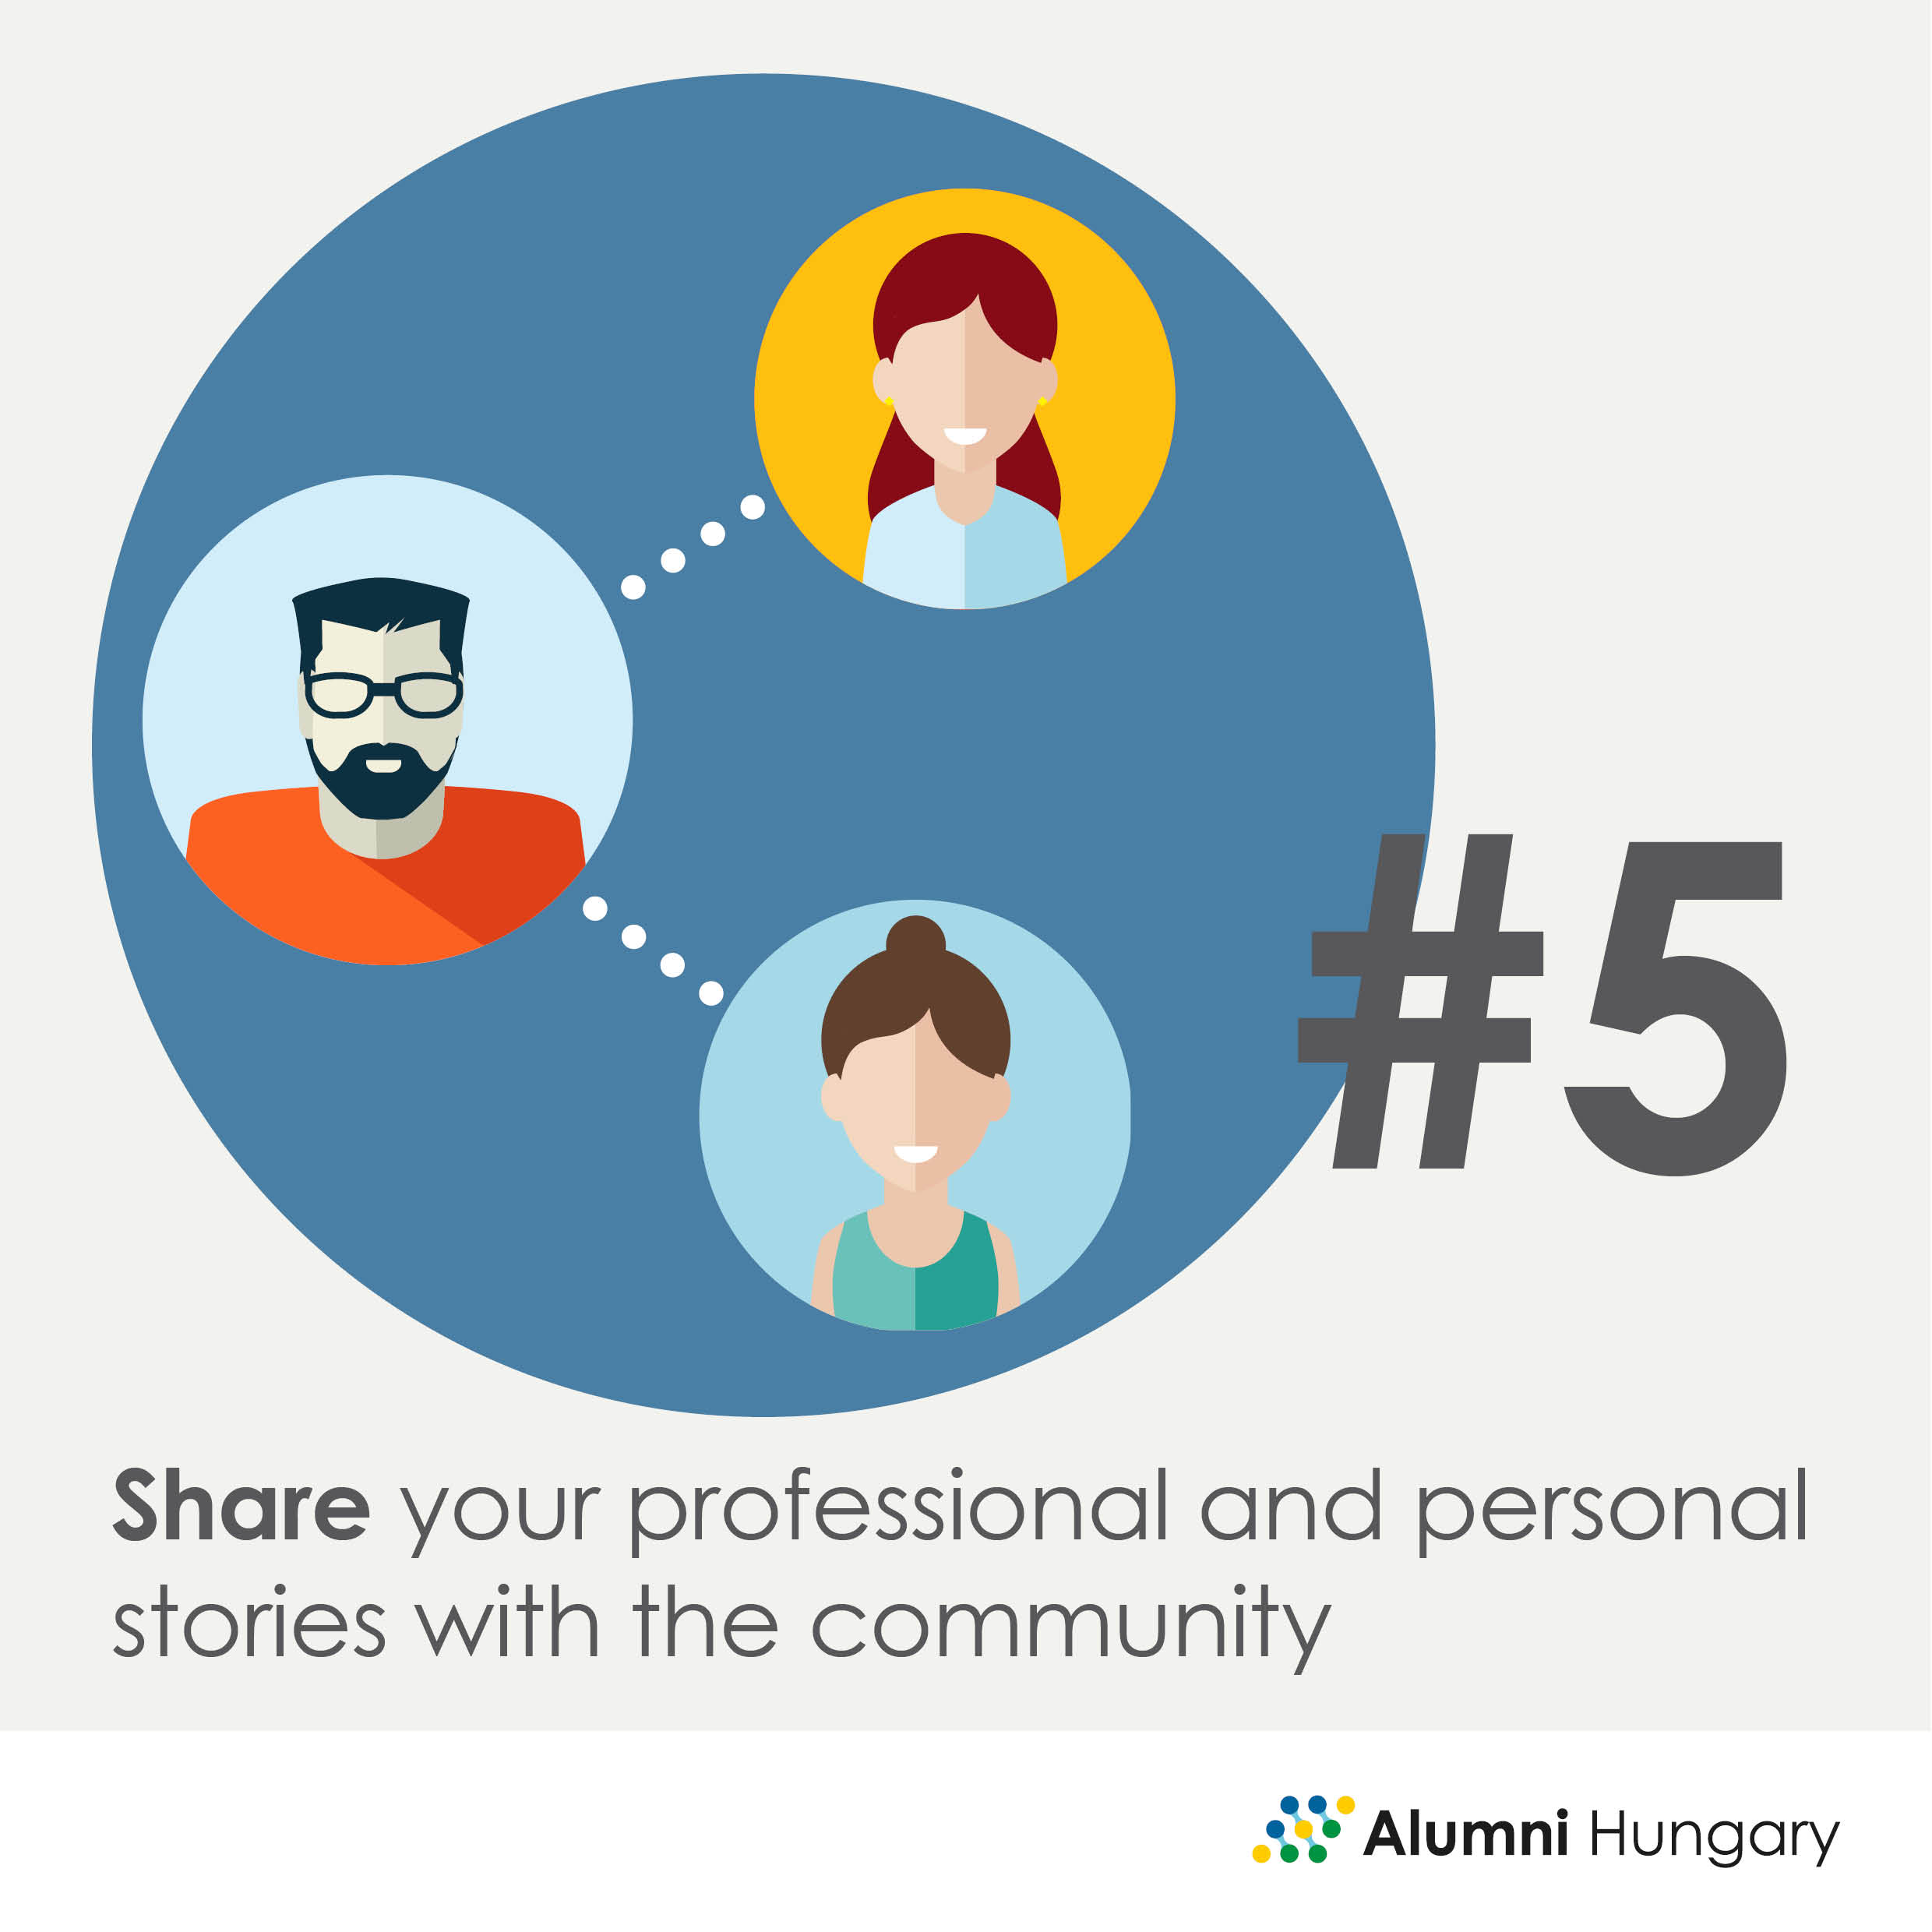 Share your professional and personal stories